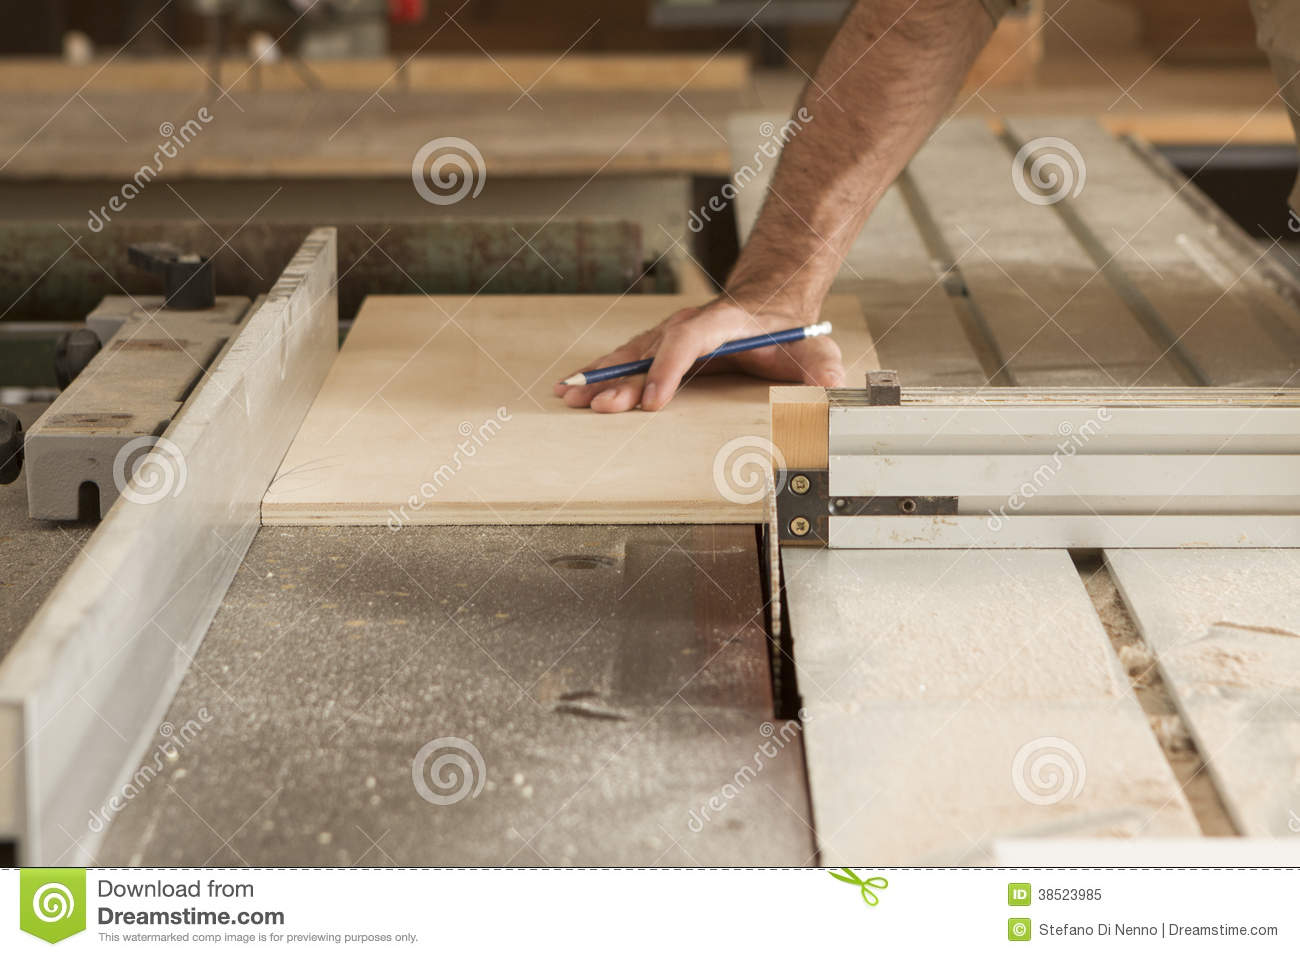 Joiner and saw